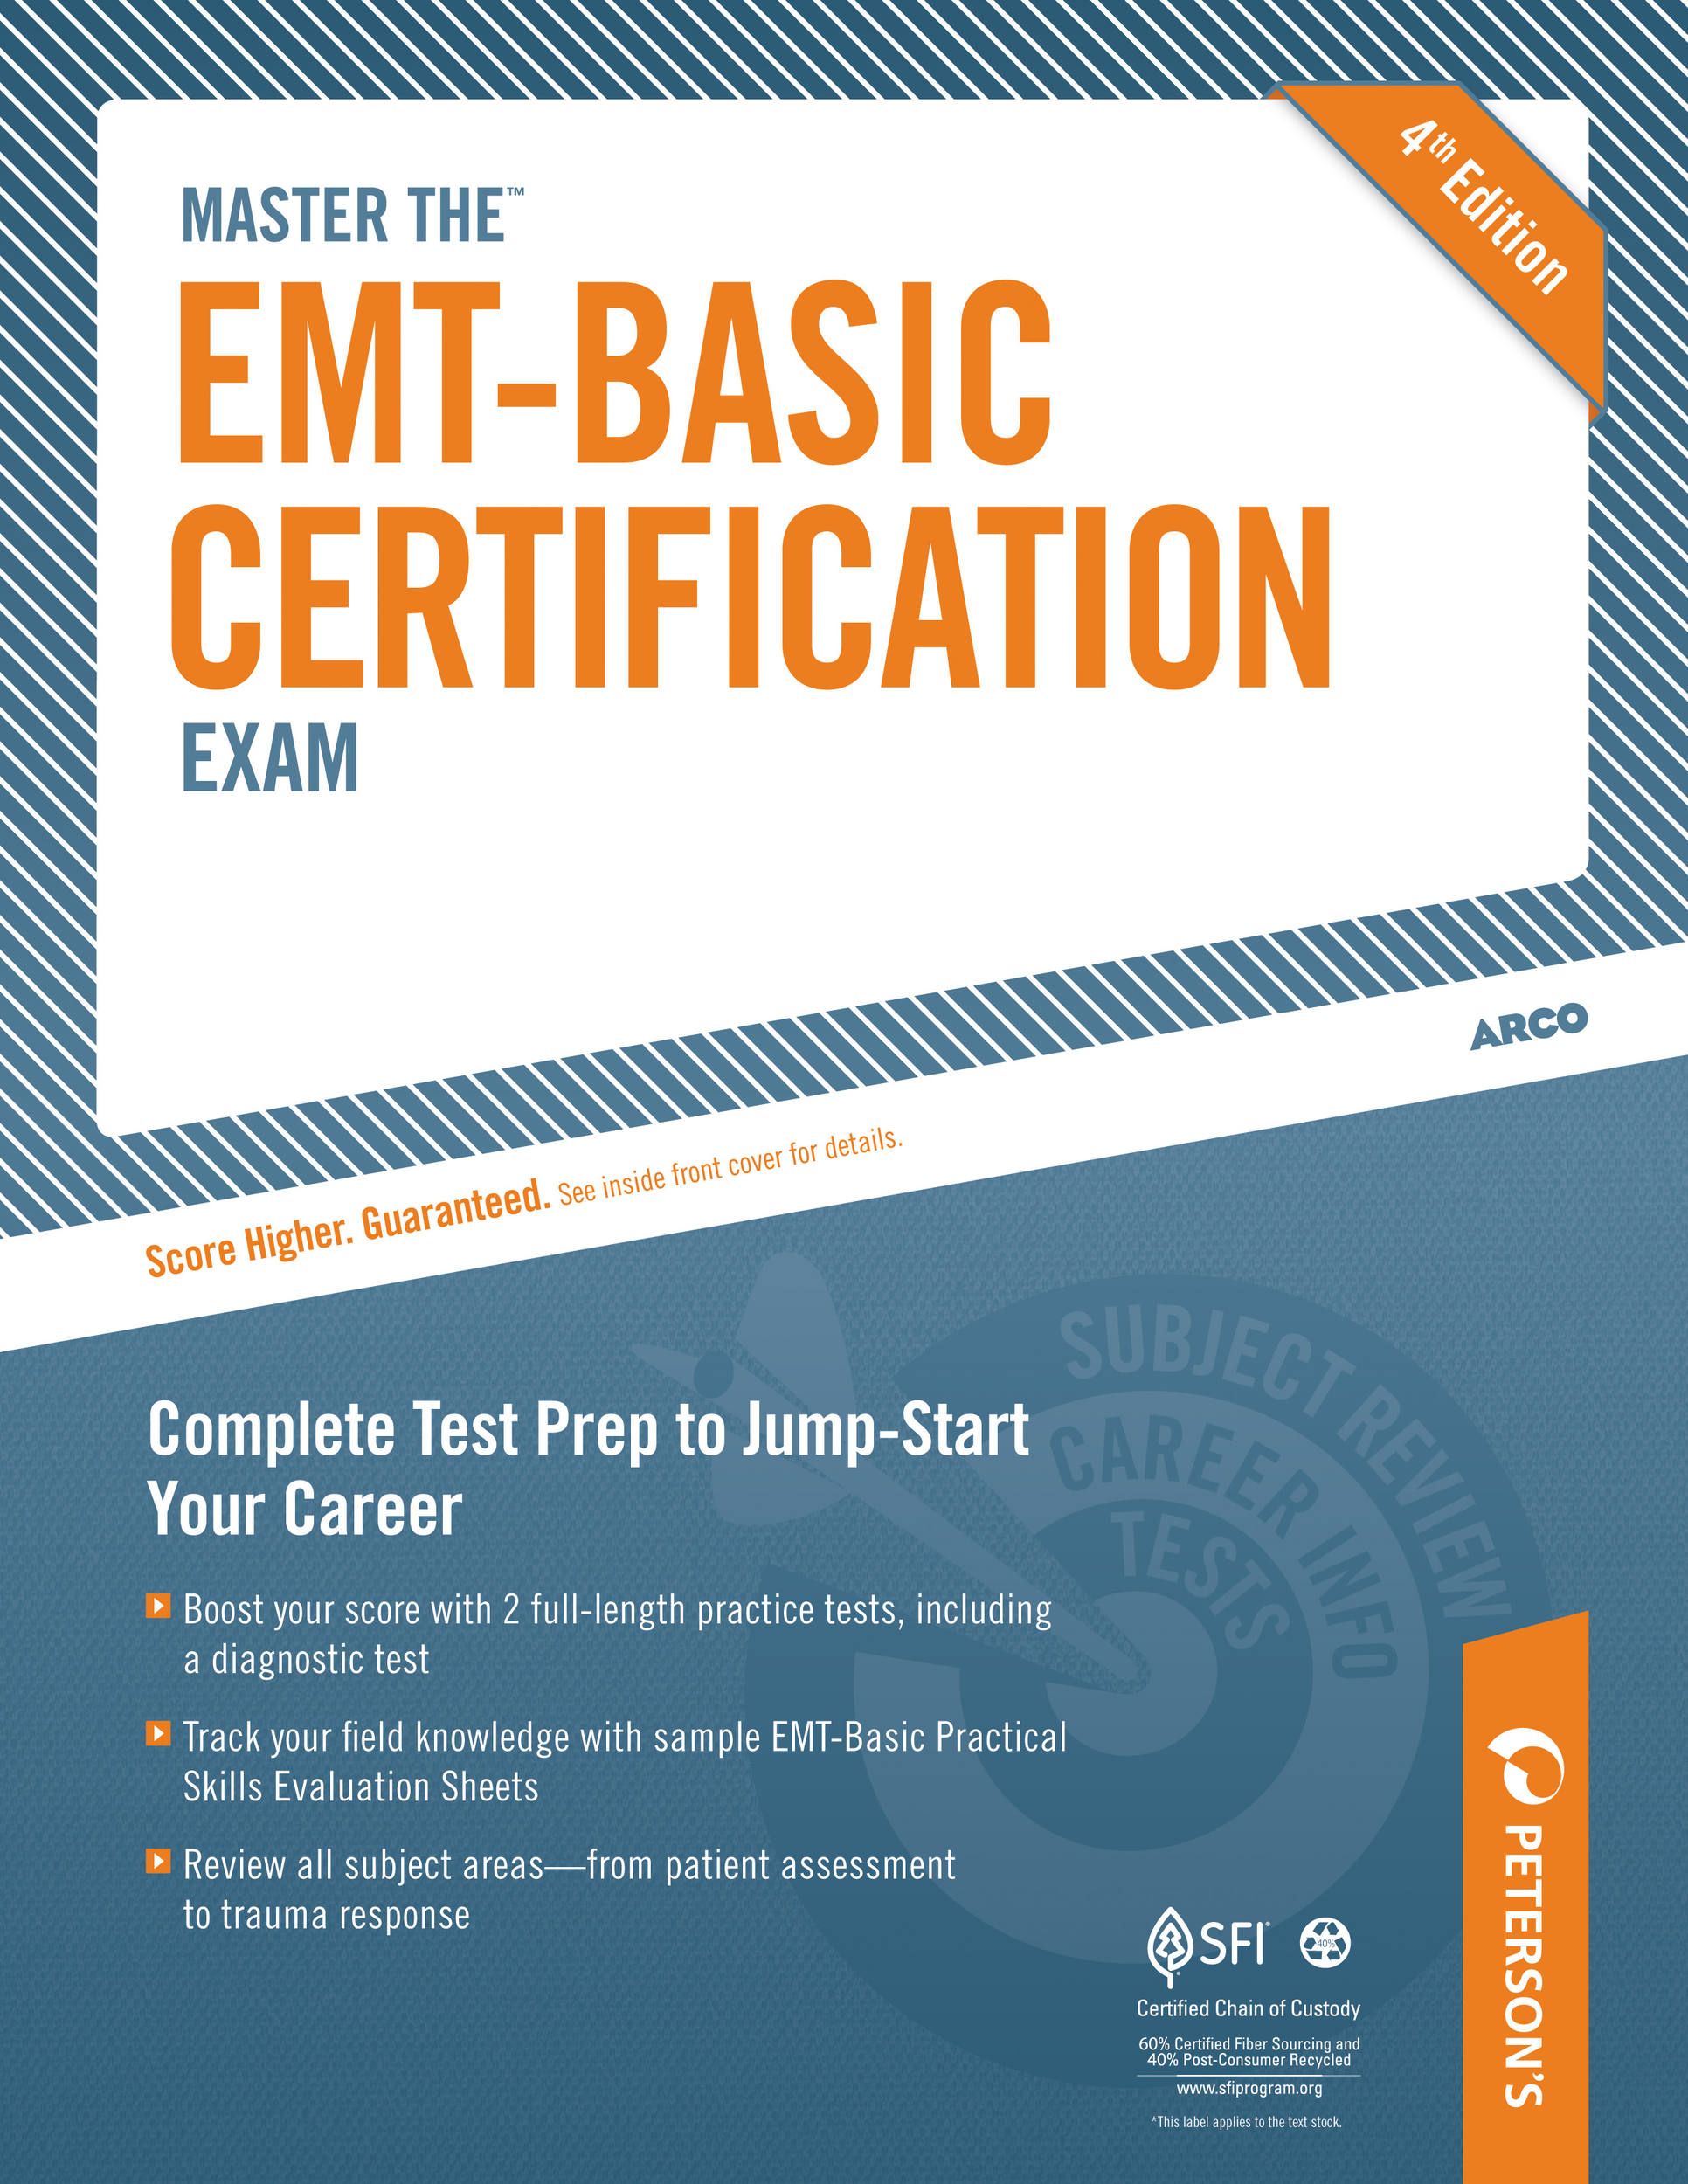 Master the EMT-Basic Certification Exam: All About the EMT